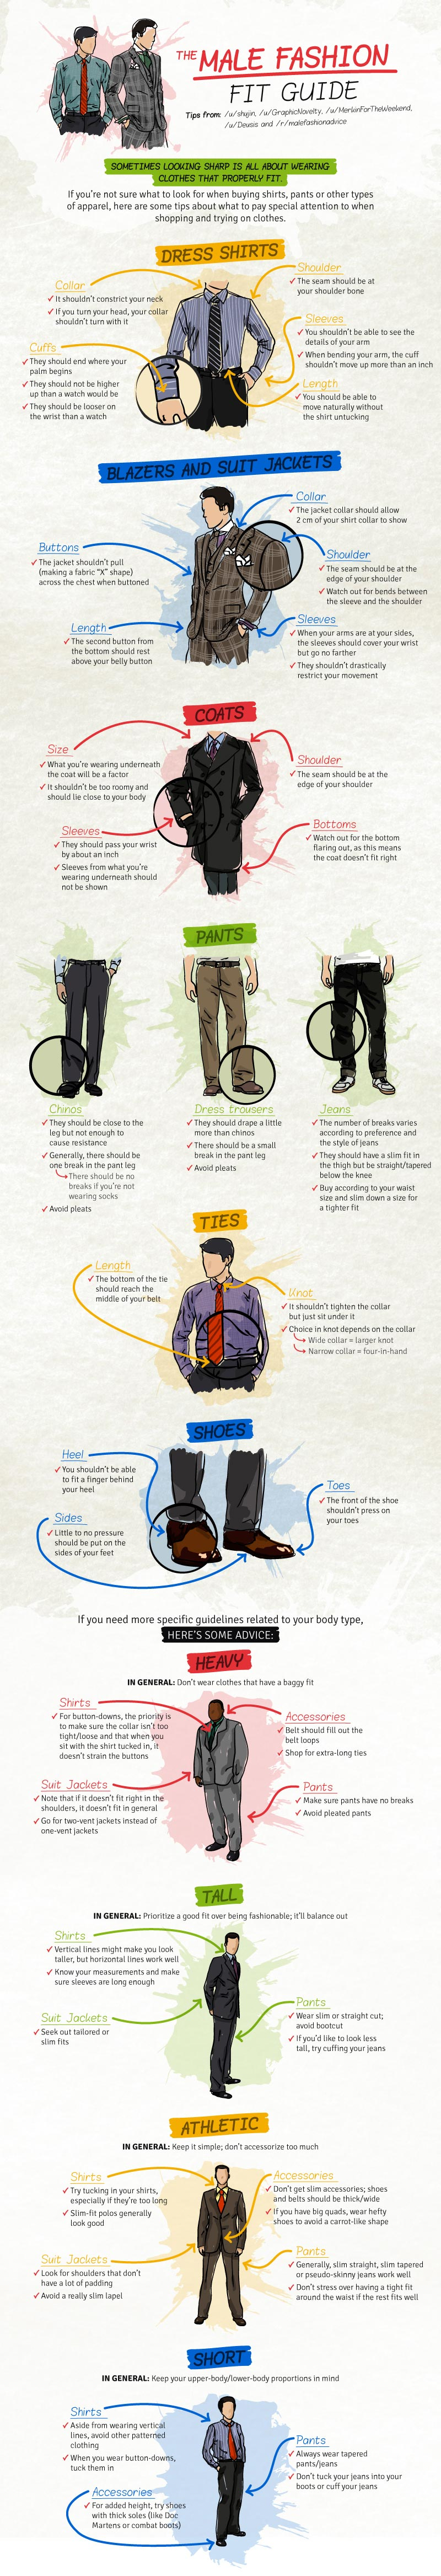 Everything you ever wanted to know about men's fashion